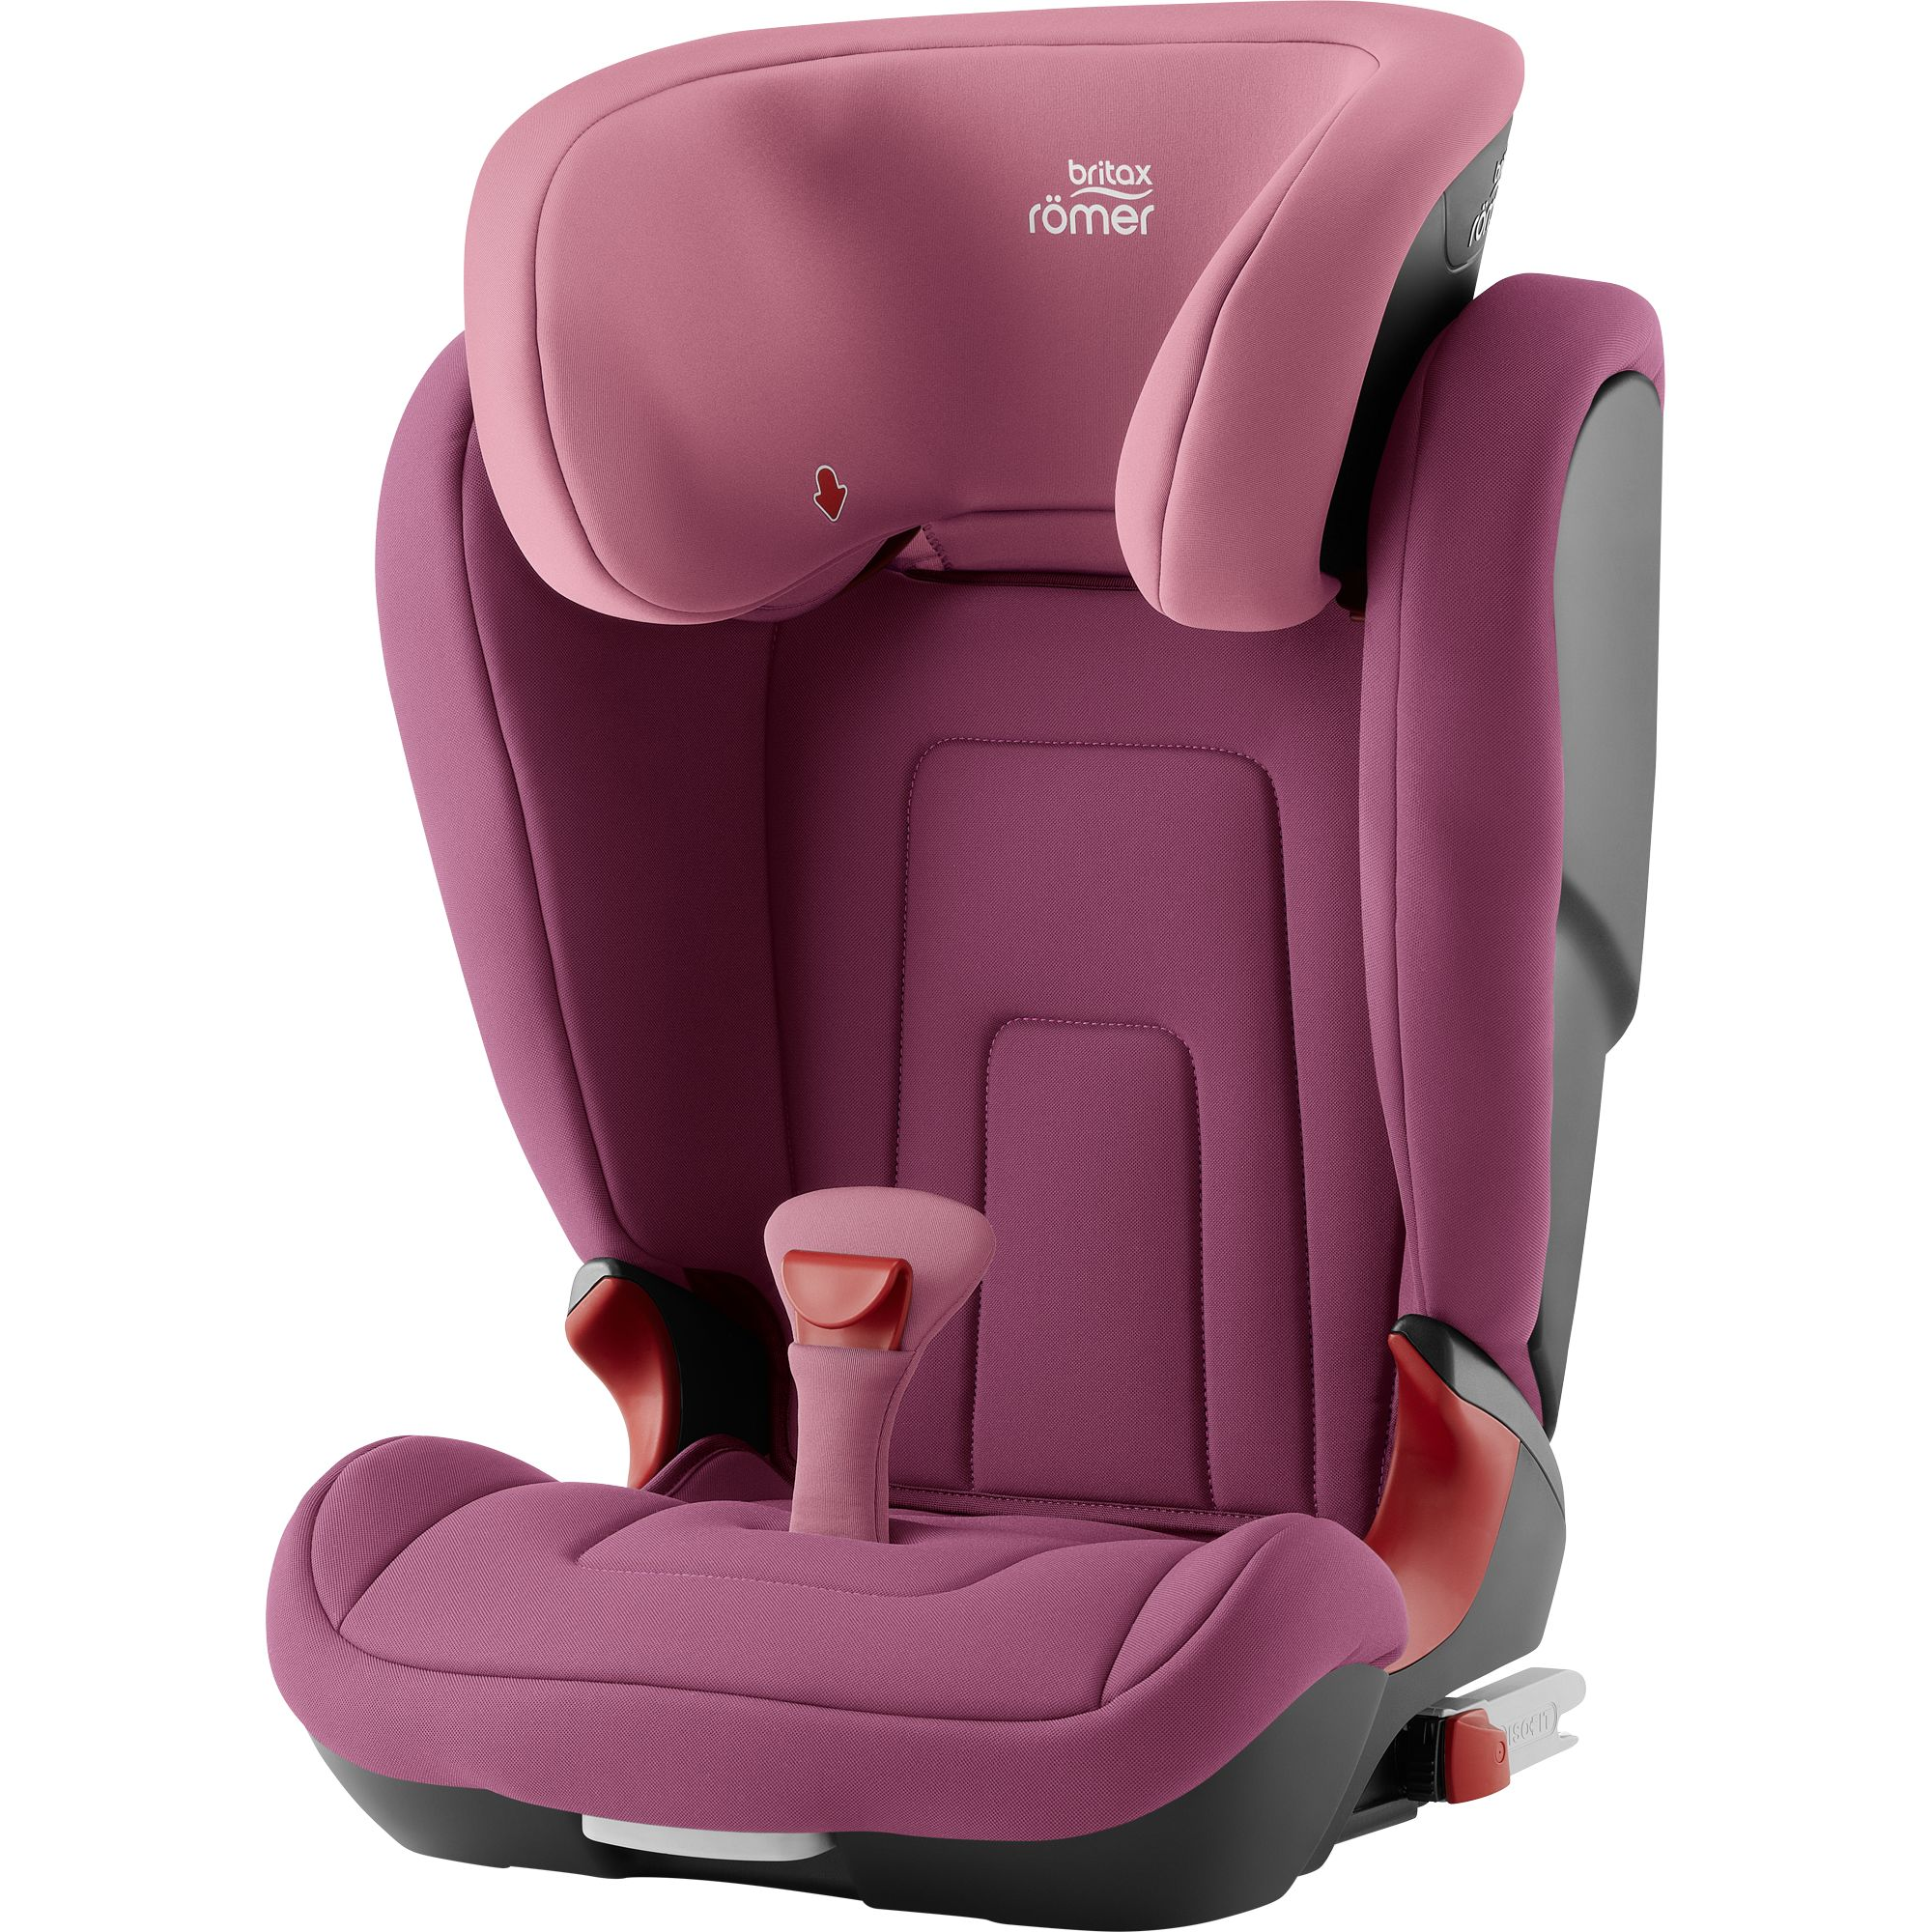 ROMER Kidfix 2 R Wine Rose 2021